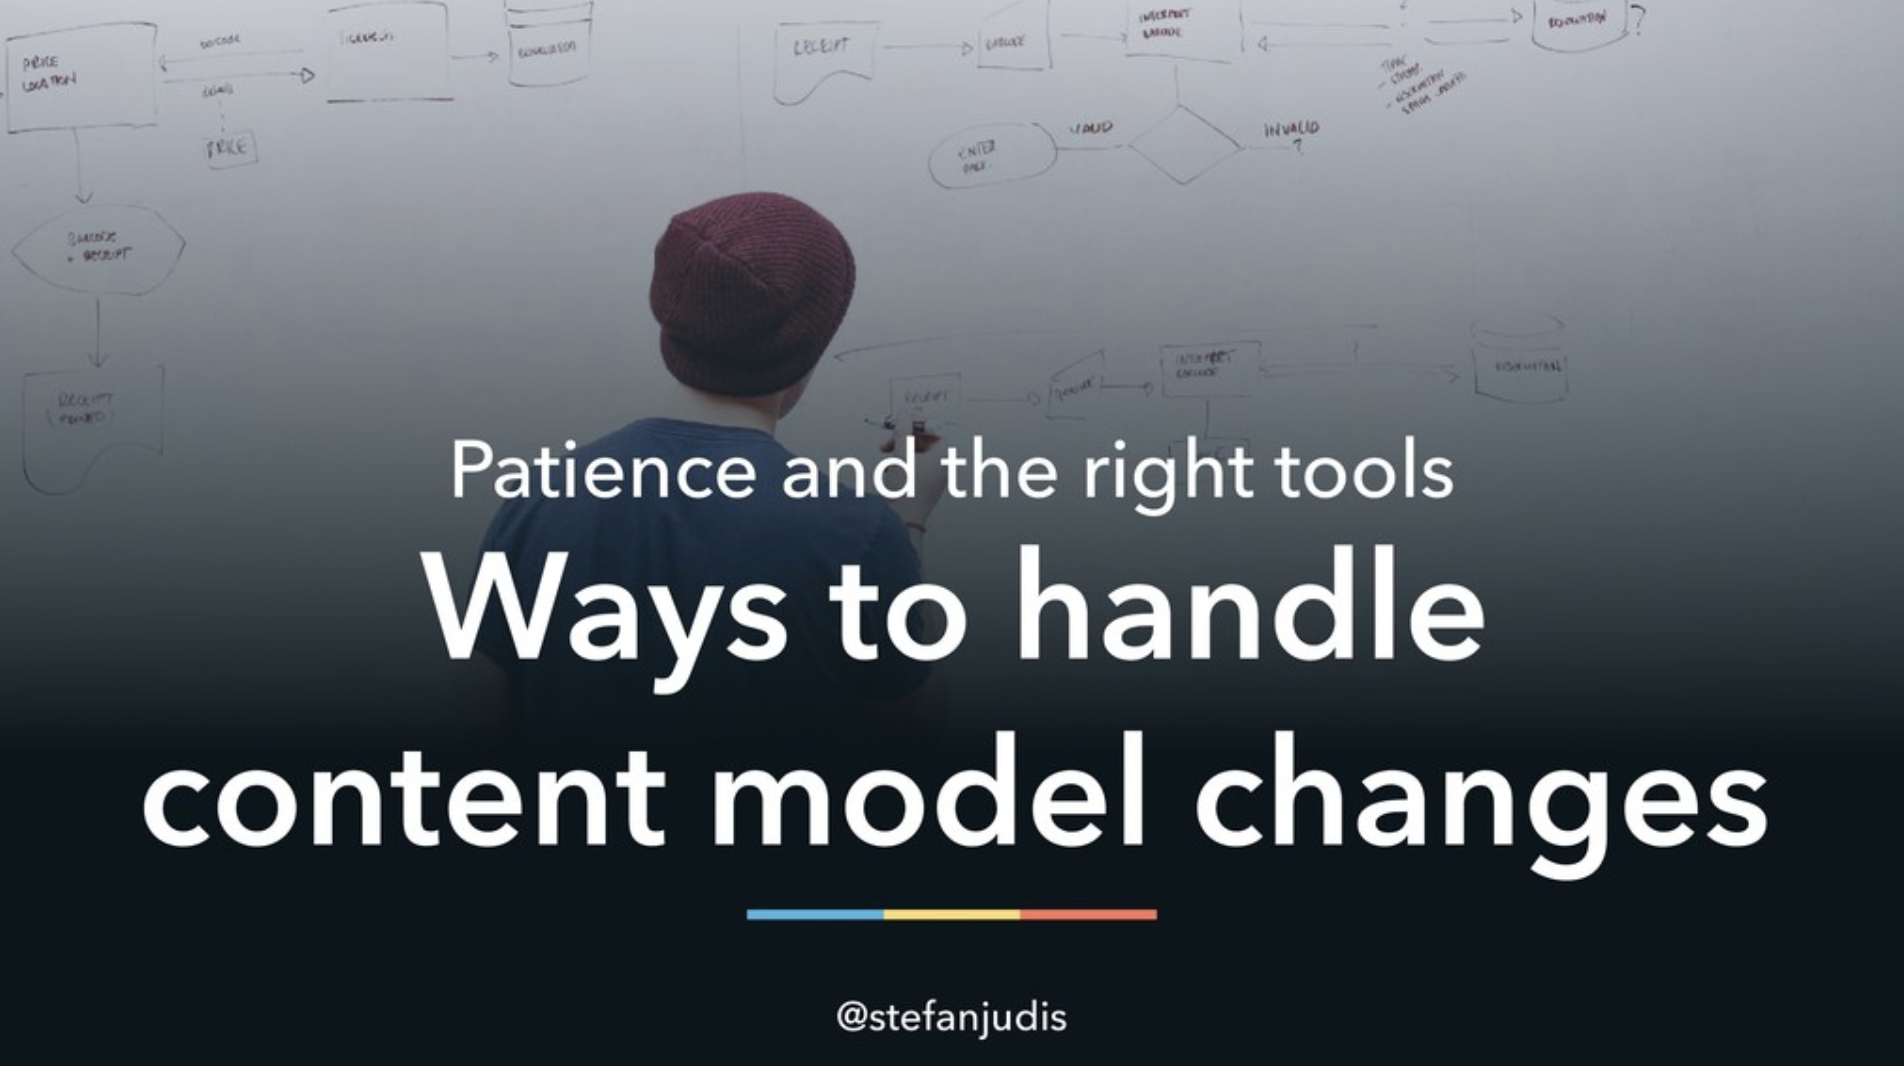 Patience and the right tools – ways to handle 